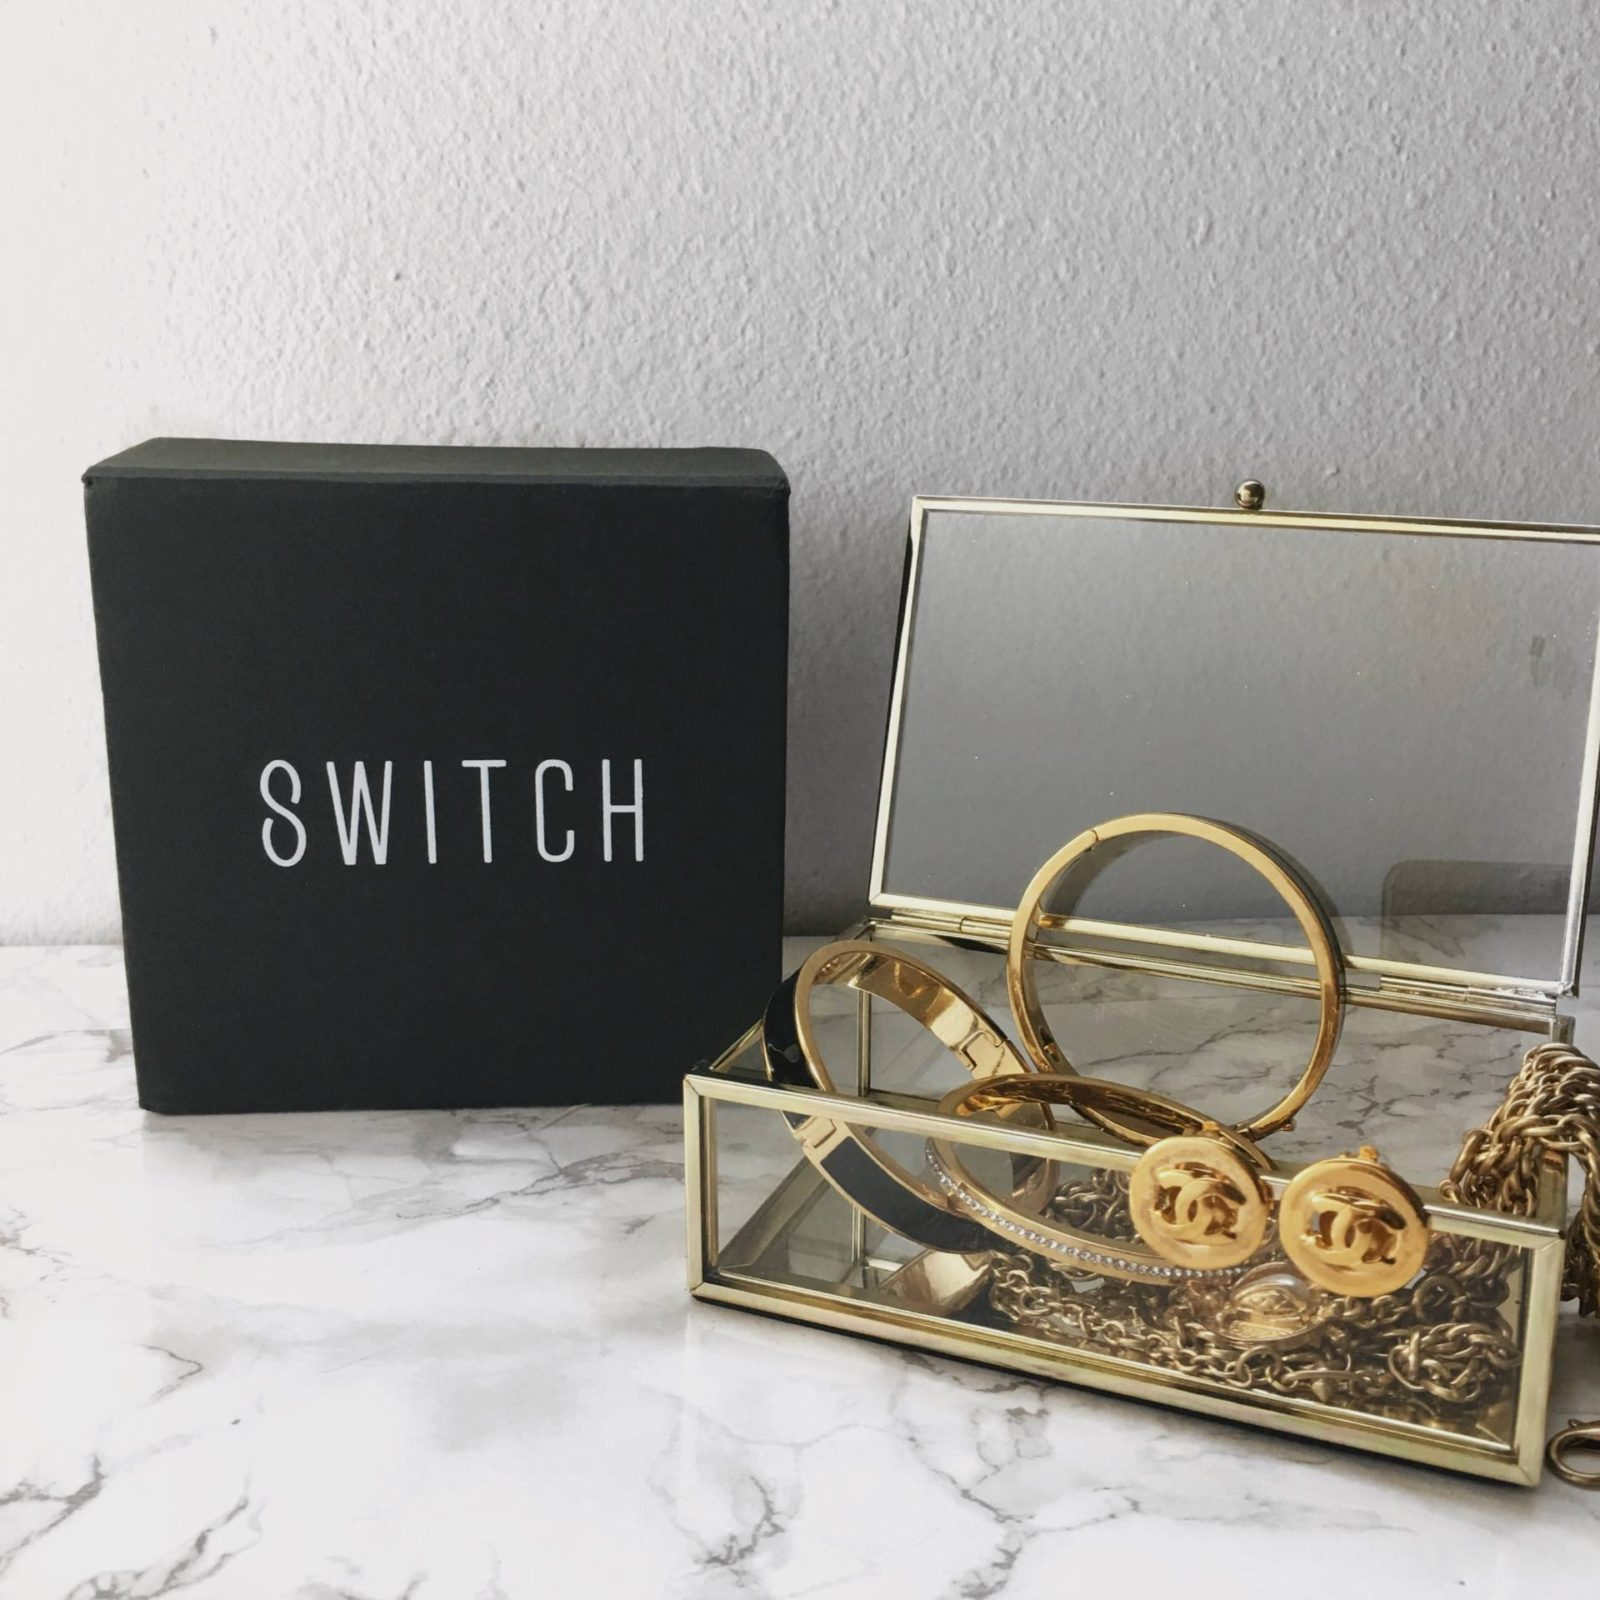 switchjewelryreview